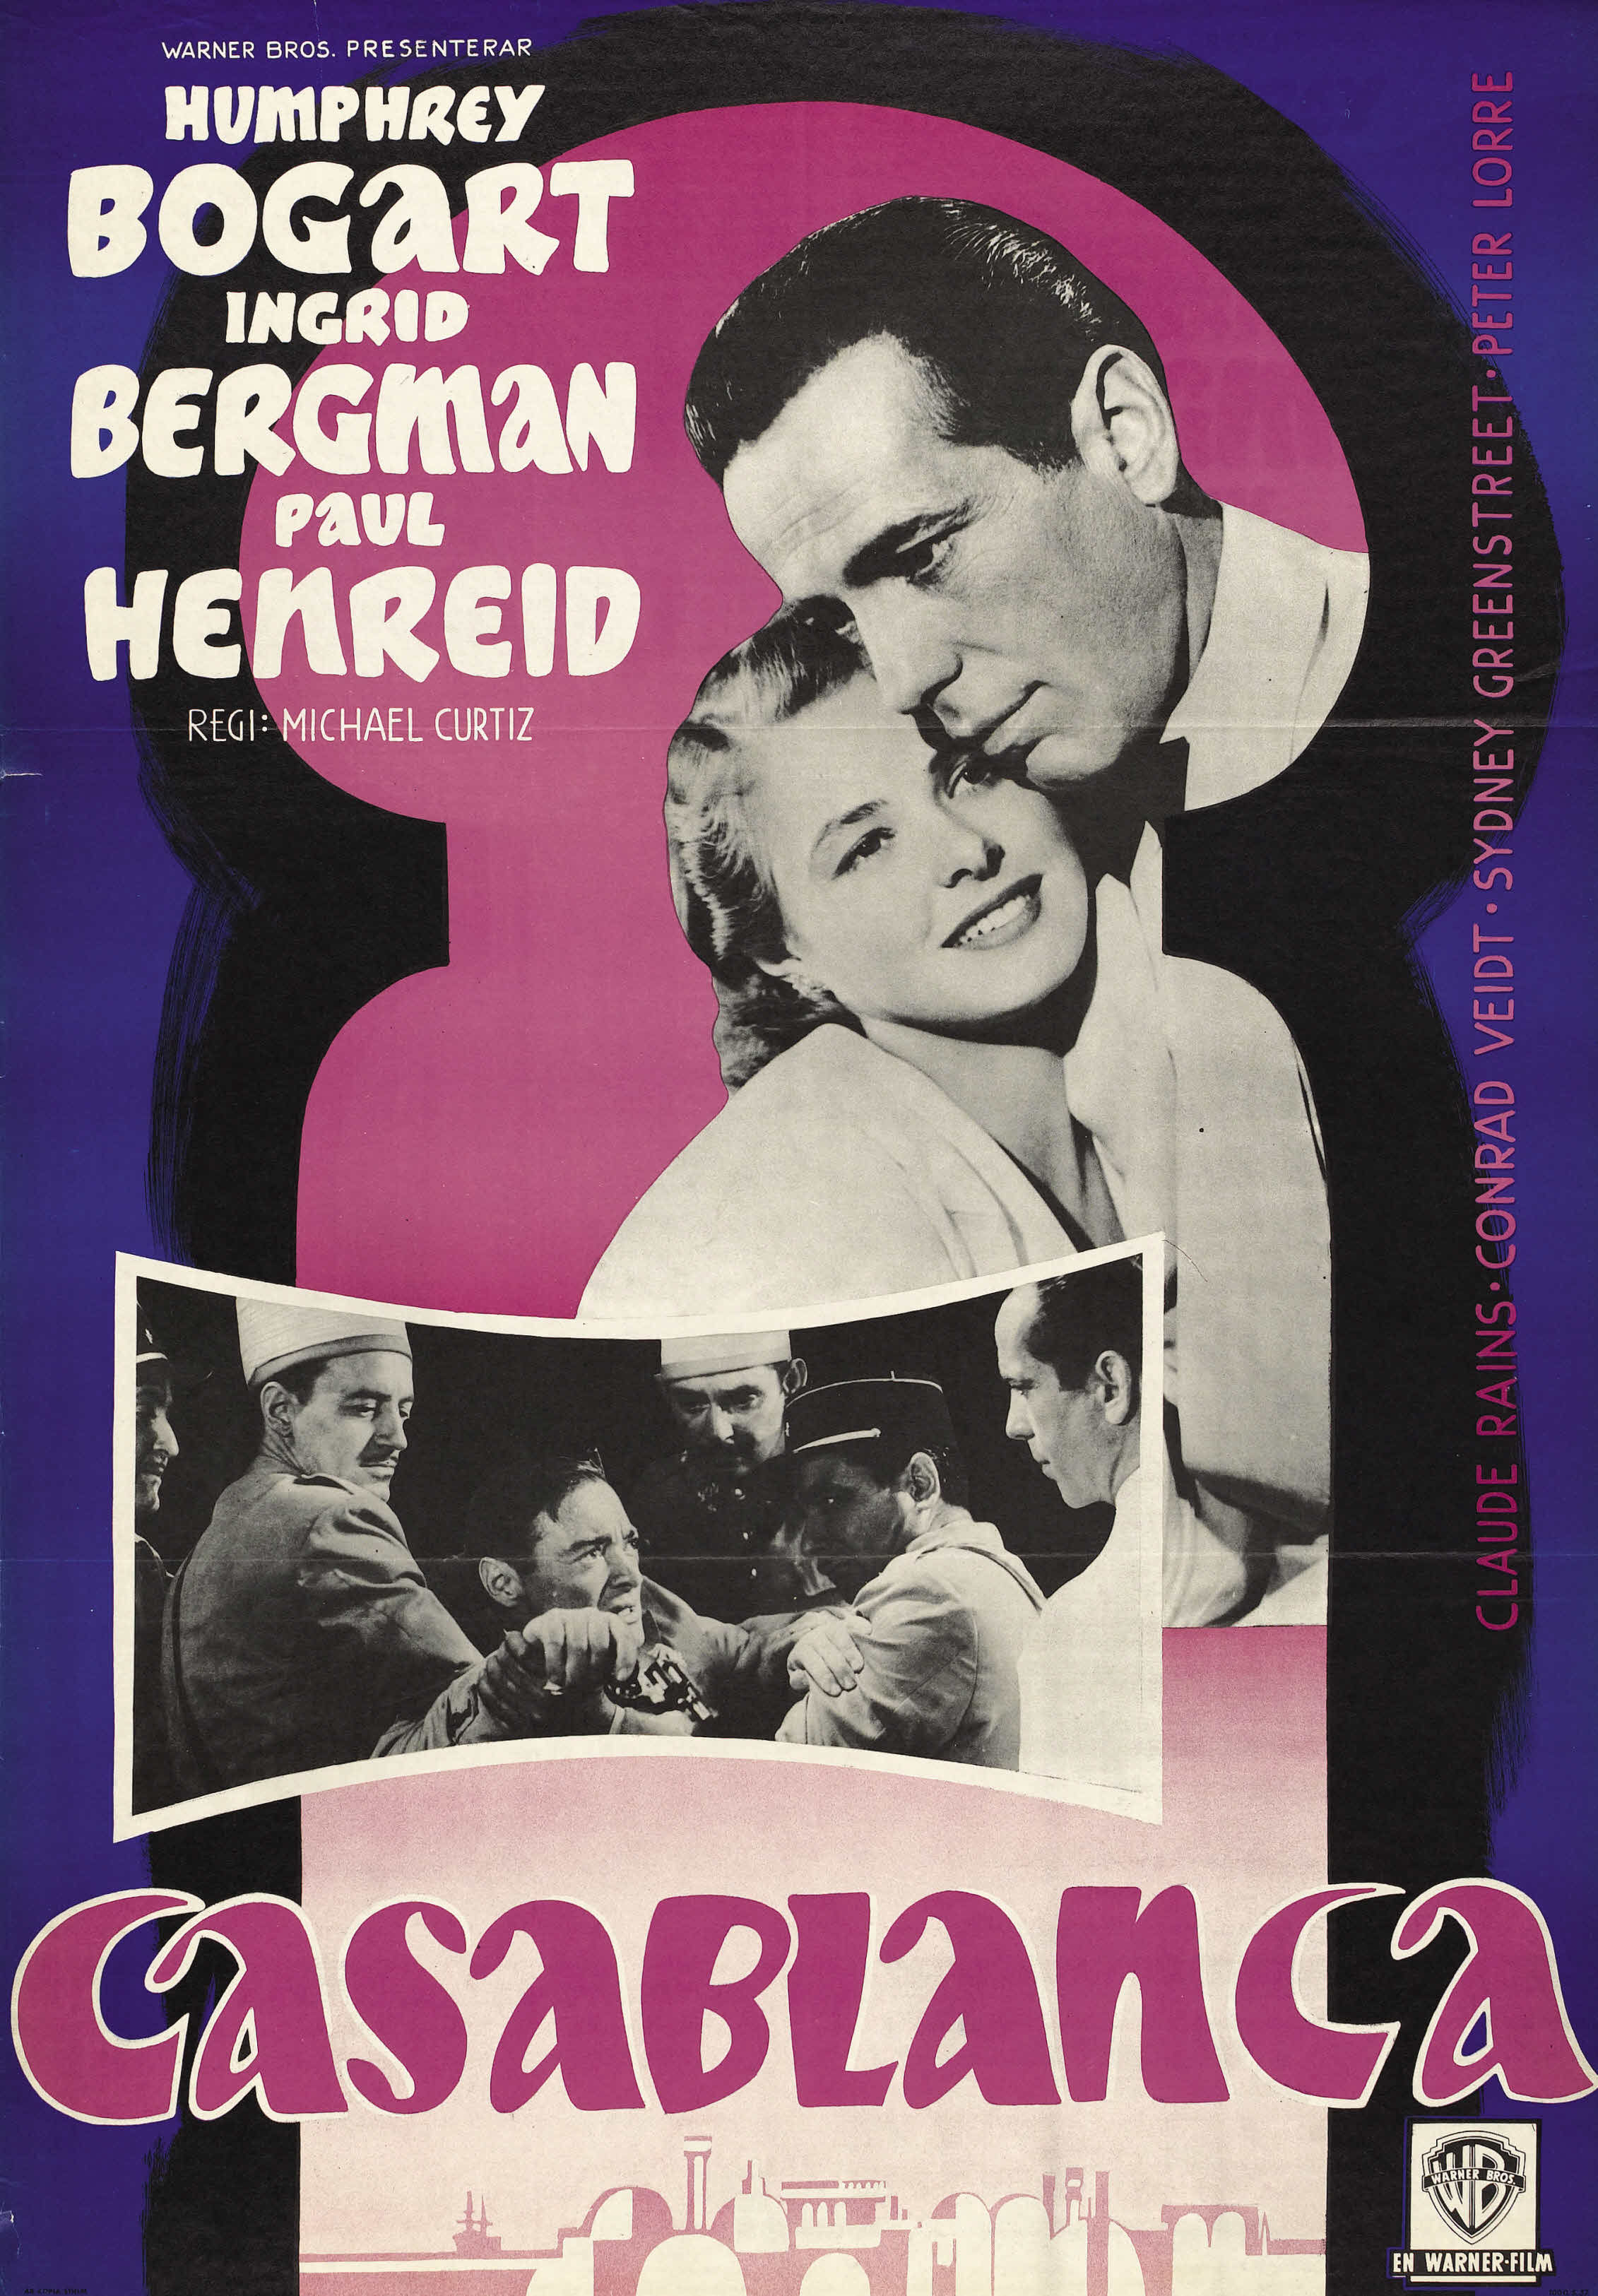 literary genre of casablanca by michael curtiz essay Pop reviews and in-depth analyses of current and classic films from around the world.